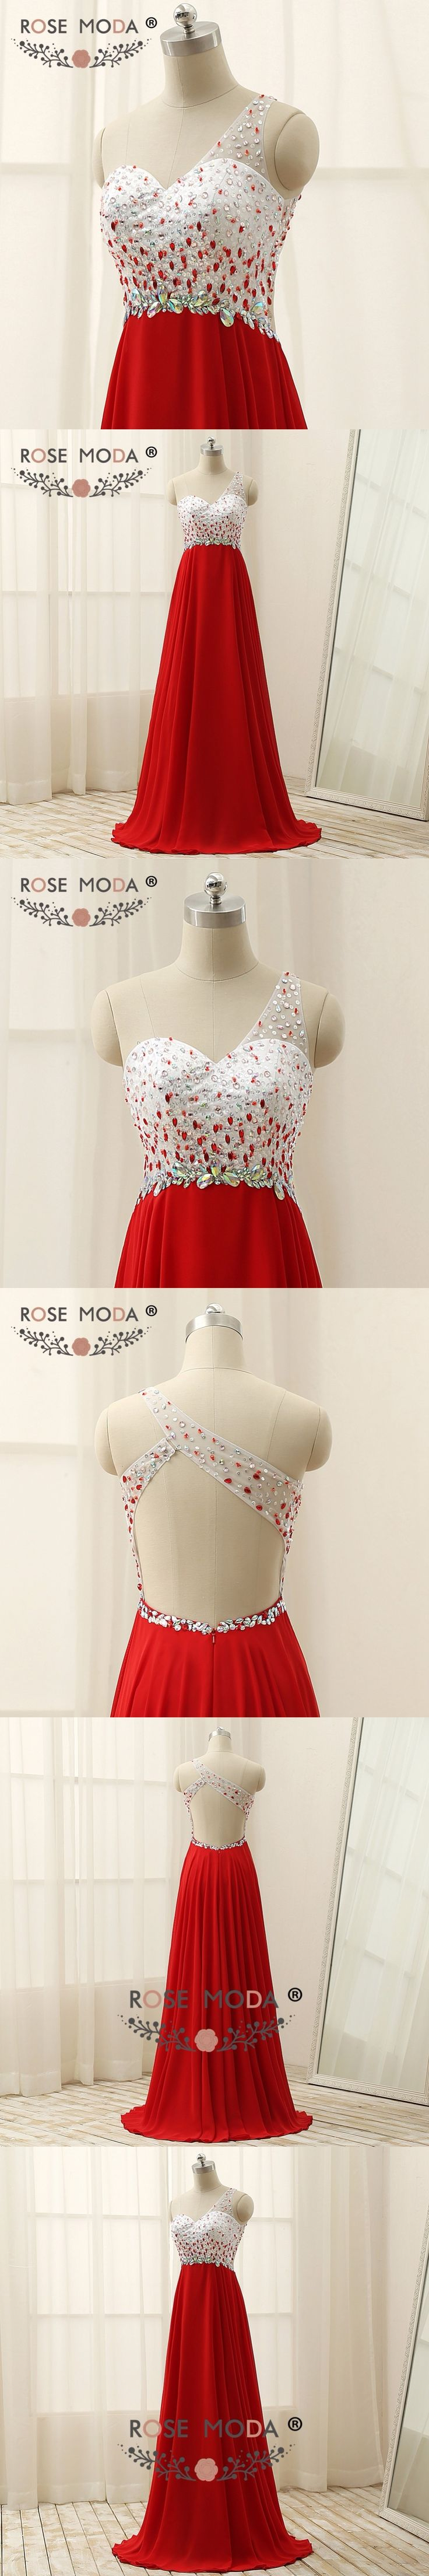 Rose Moda One Shoulder Red Prom Dress Floor Length Cut Out Back Crystal Prom Dresses Xmas Party Dress 2018